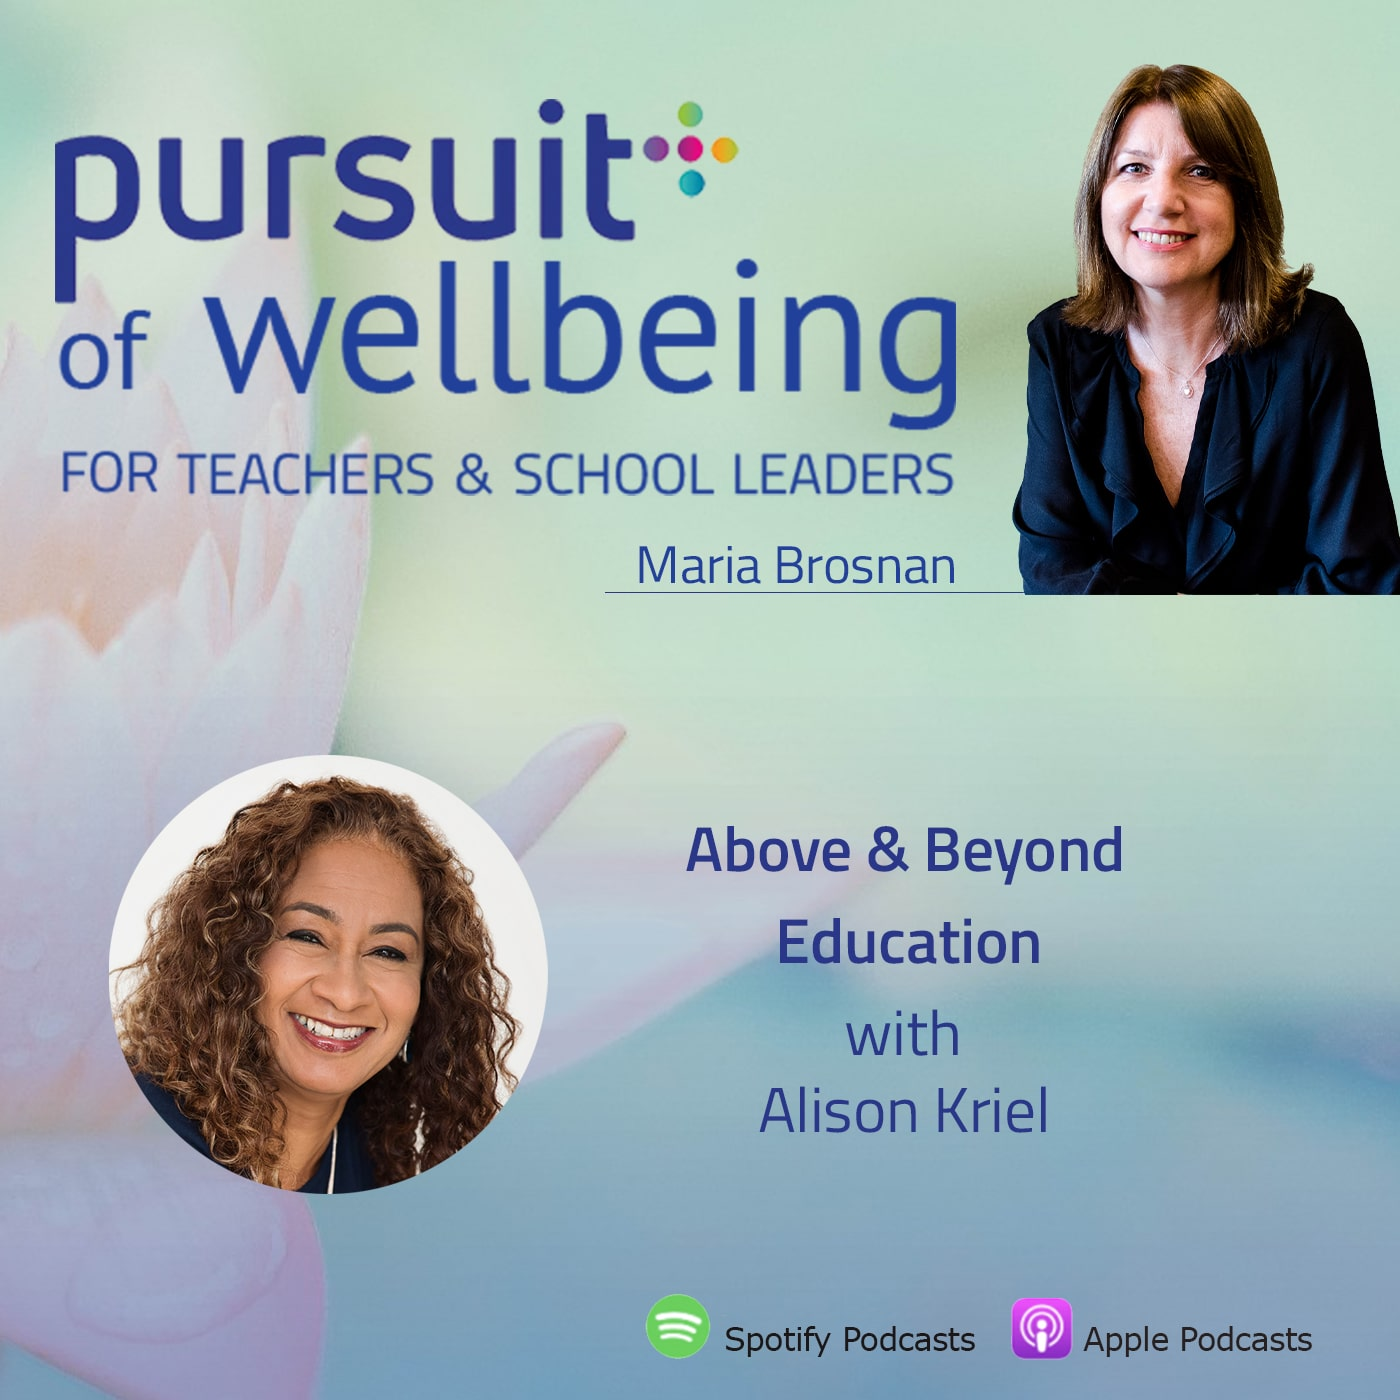 Above & Beyond Education with Alison Kriel